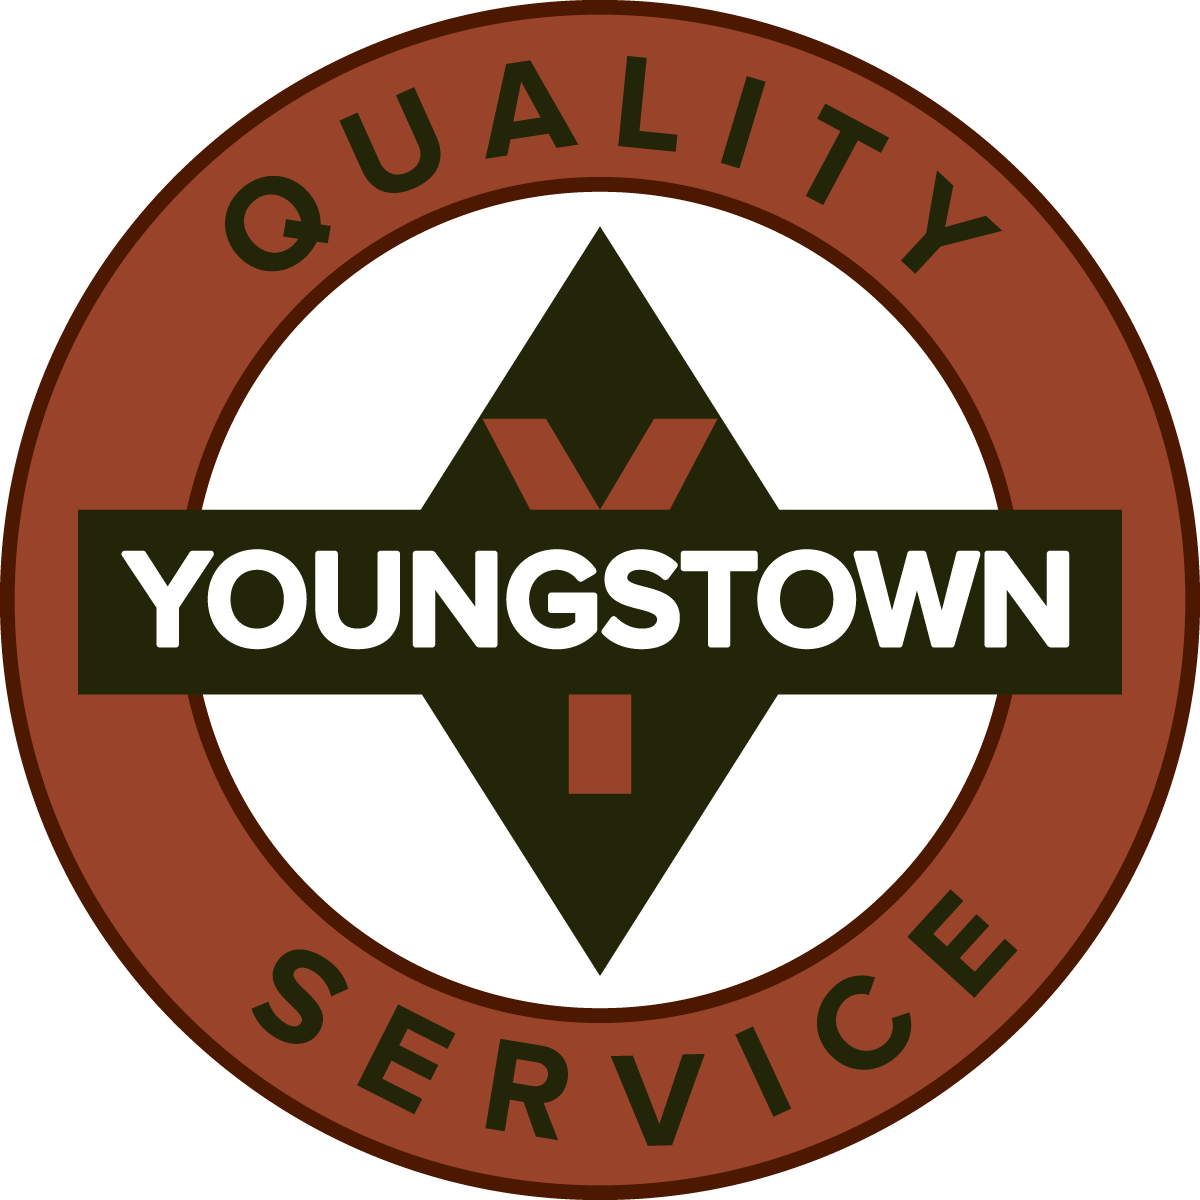 The Youngstown Sheet and Tube Company